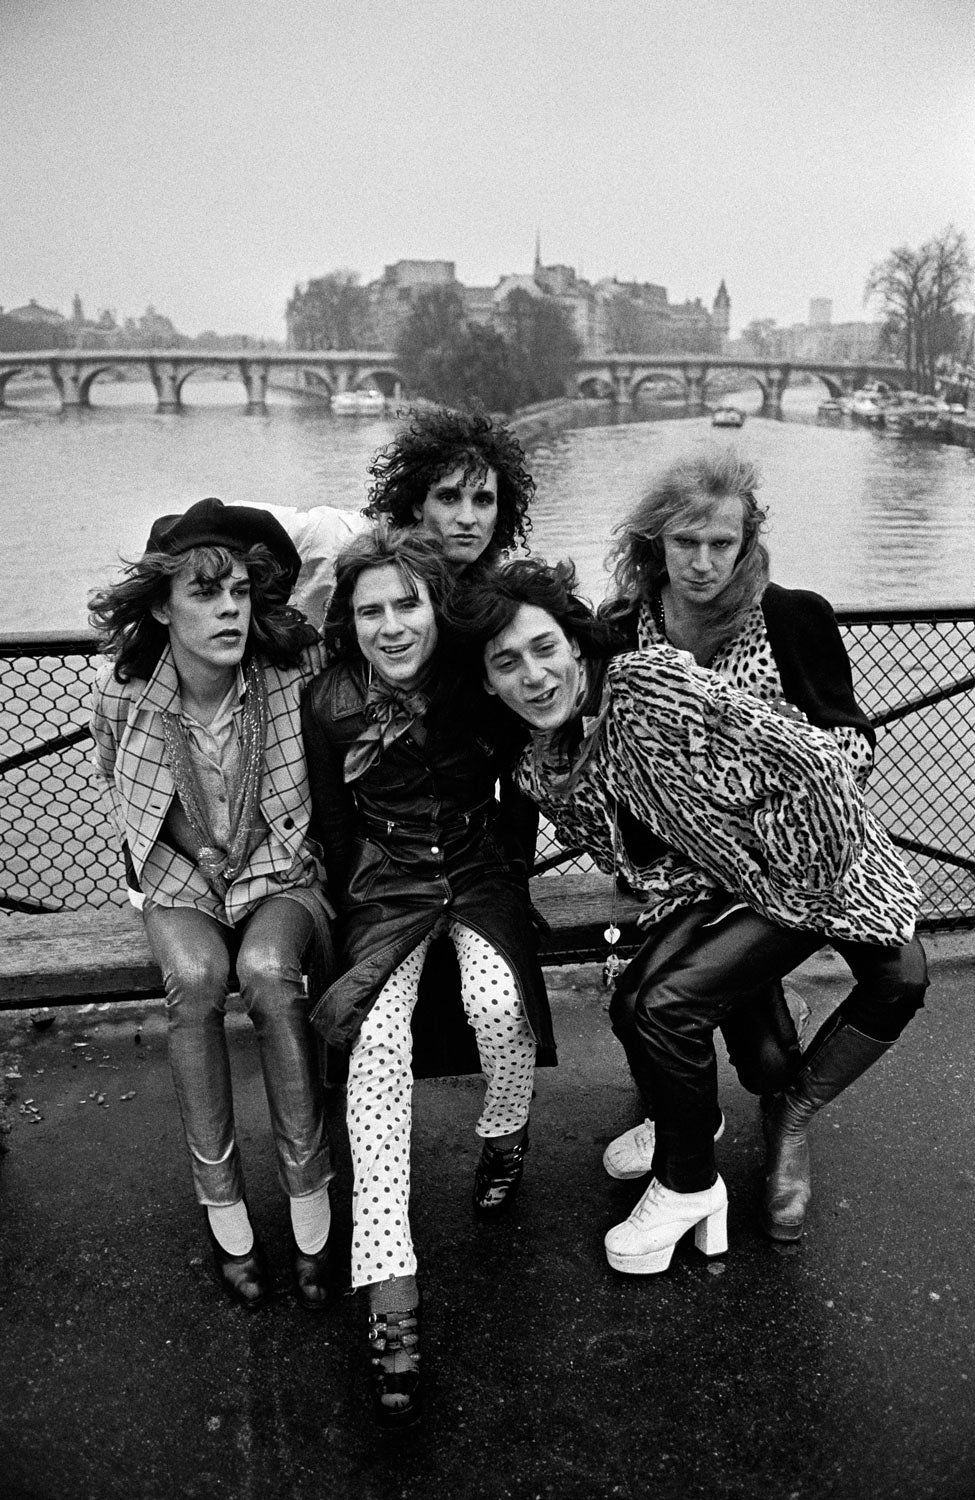 The New York Dolls S Sylvain Sylvain On The Band S Groundbreaking Style And His Clothing Line Johnny Thunders Band Pictures Glam Rock